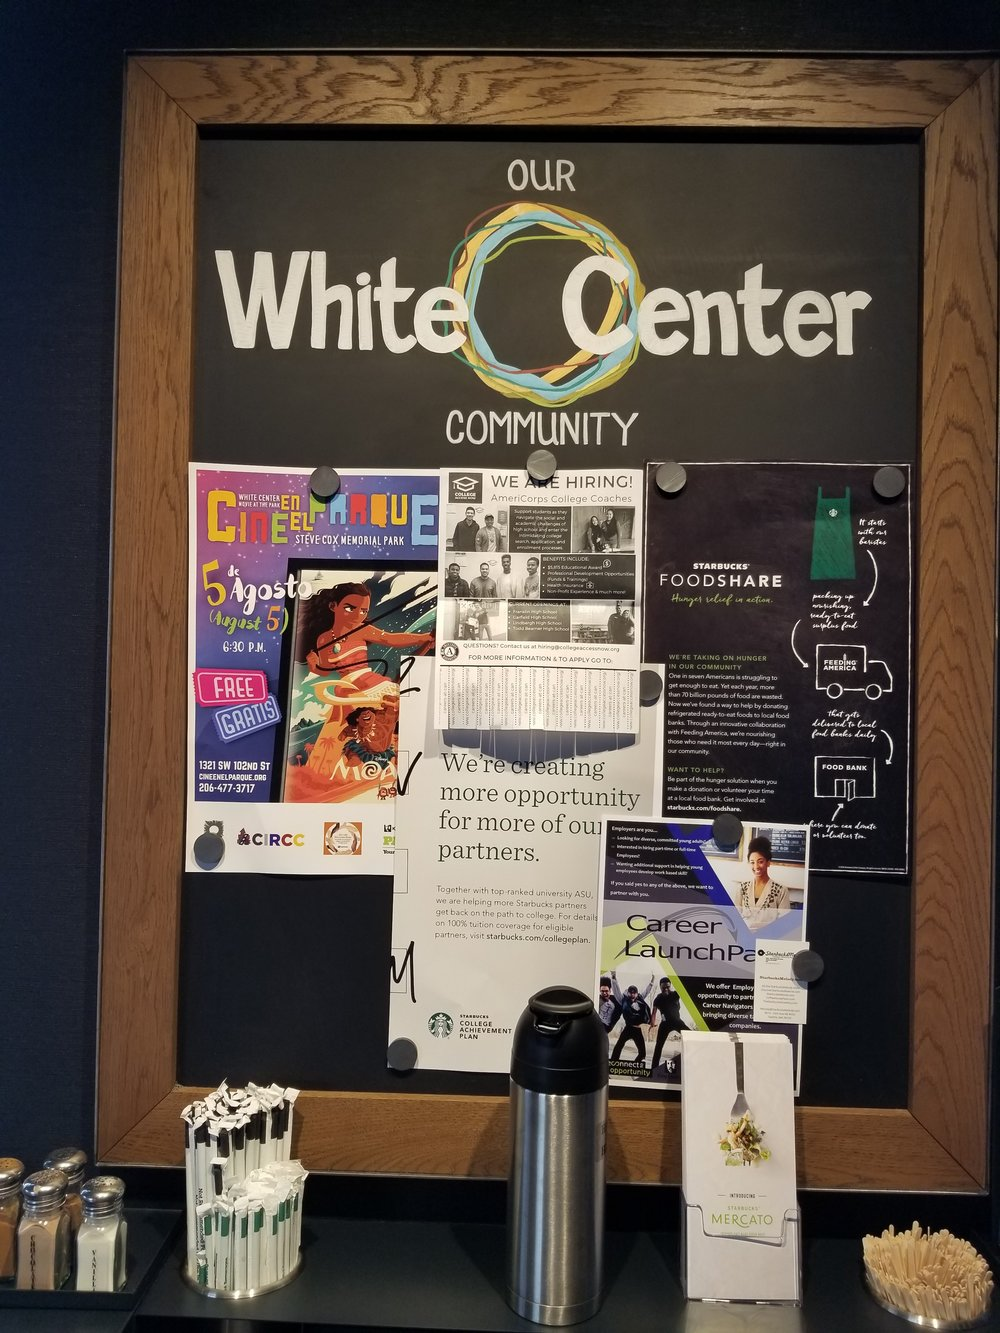 2017 August 05 White Center Starbucks community board.jpg